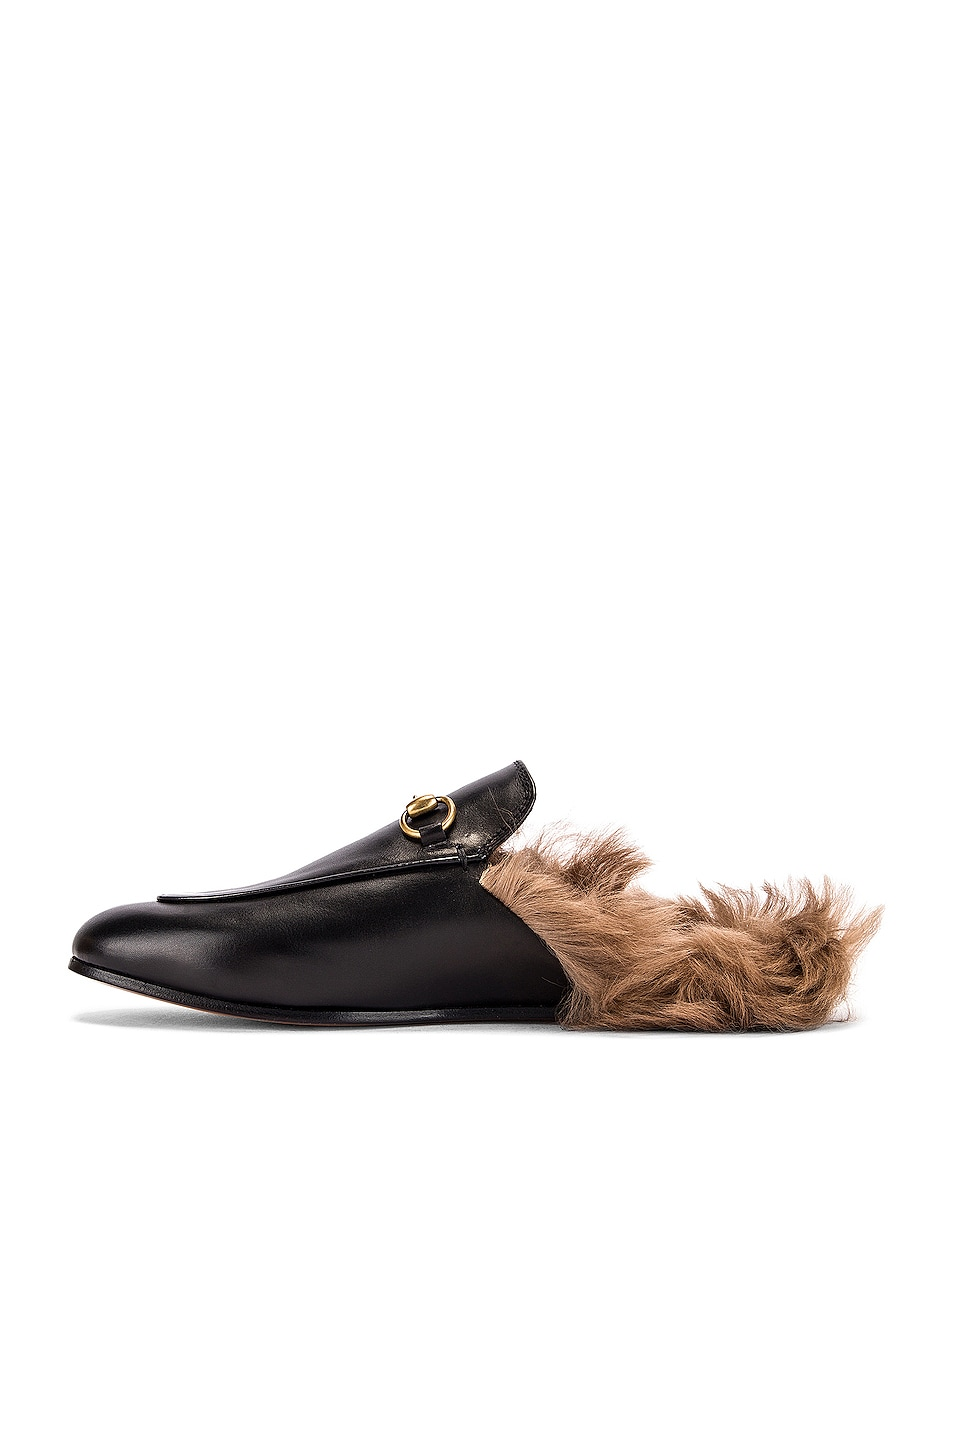 Image 5 of Gucci Princetown Slides in Black & Natural